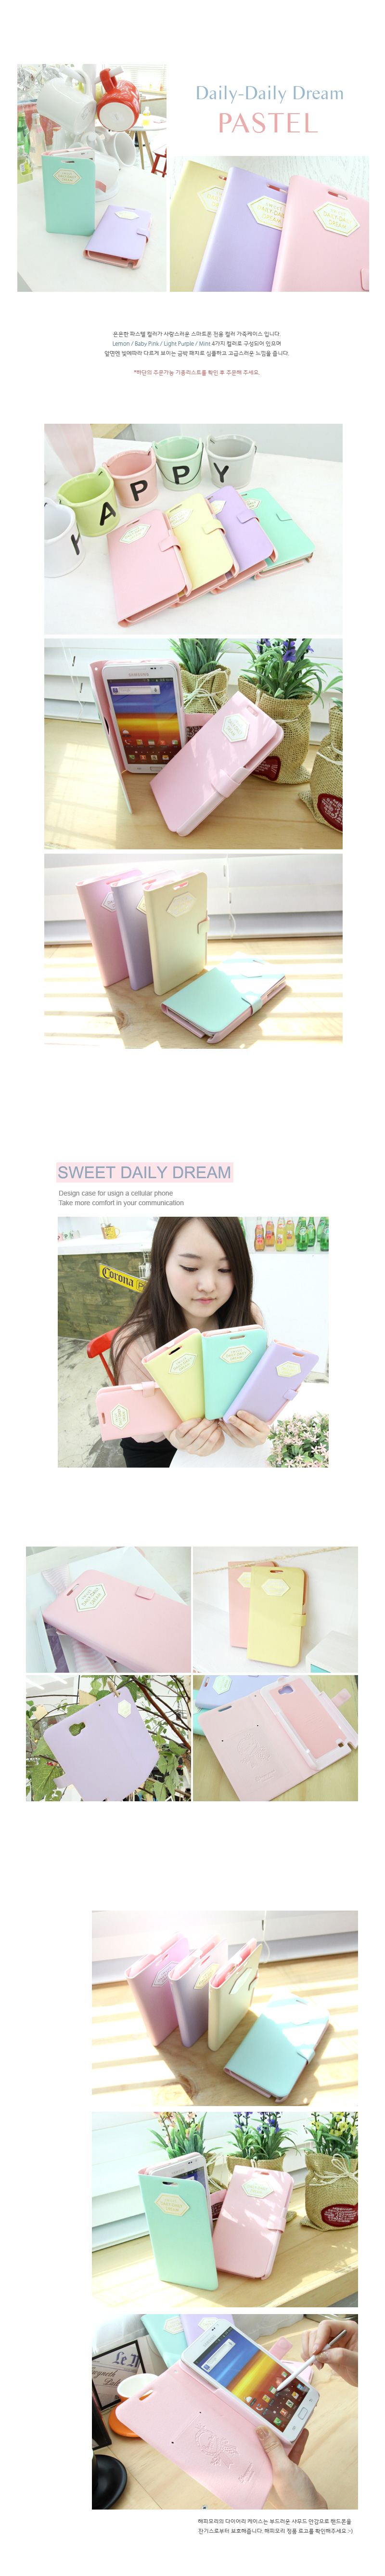 [HAPPYMORI] Flip Cover Case _ Daily Dream Pastel(iPhone6Plus,iPhone6Plus_s,Galaxy S6Edge,Galaxy S6,Galaxy Note4)